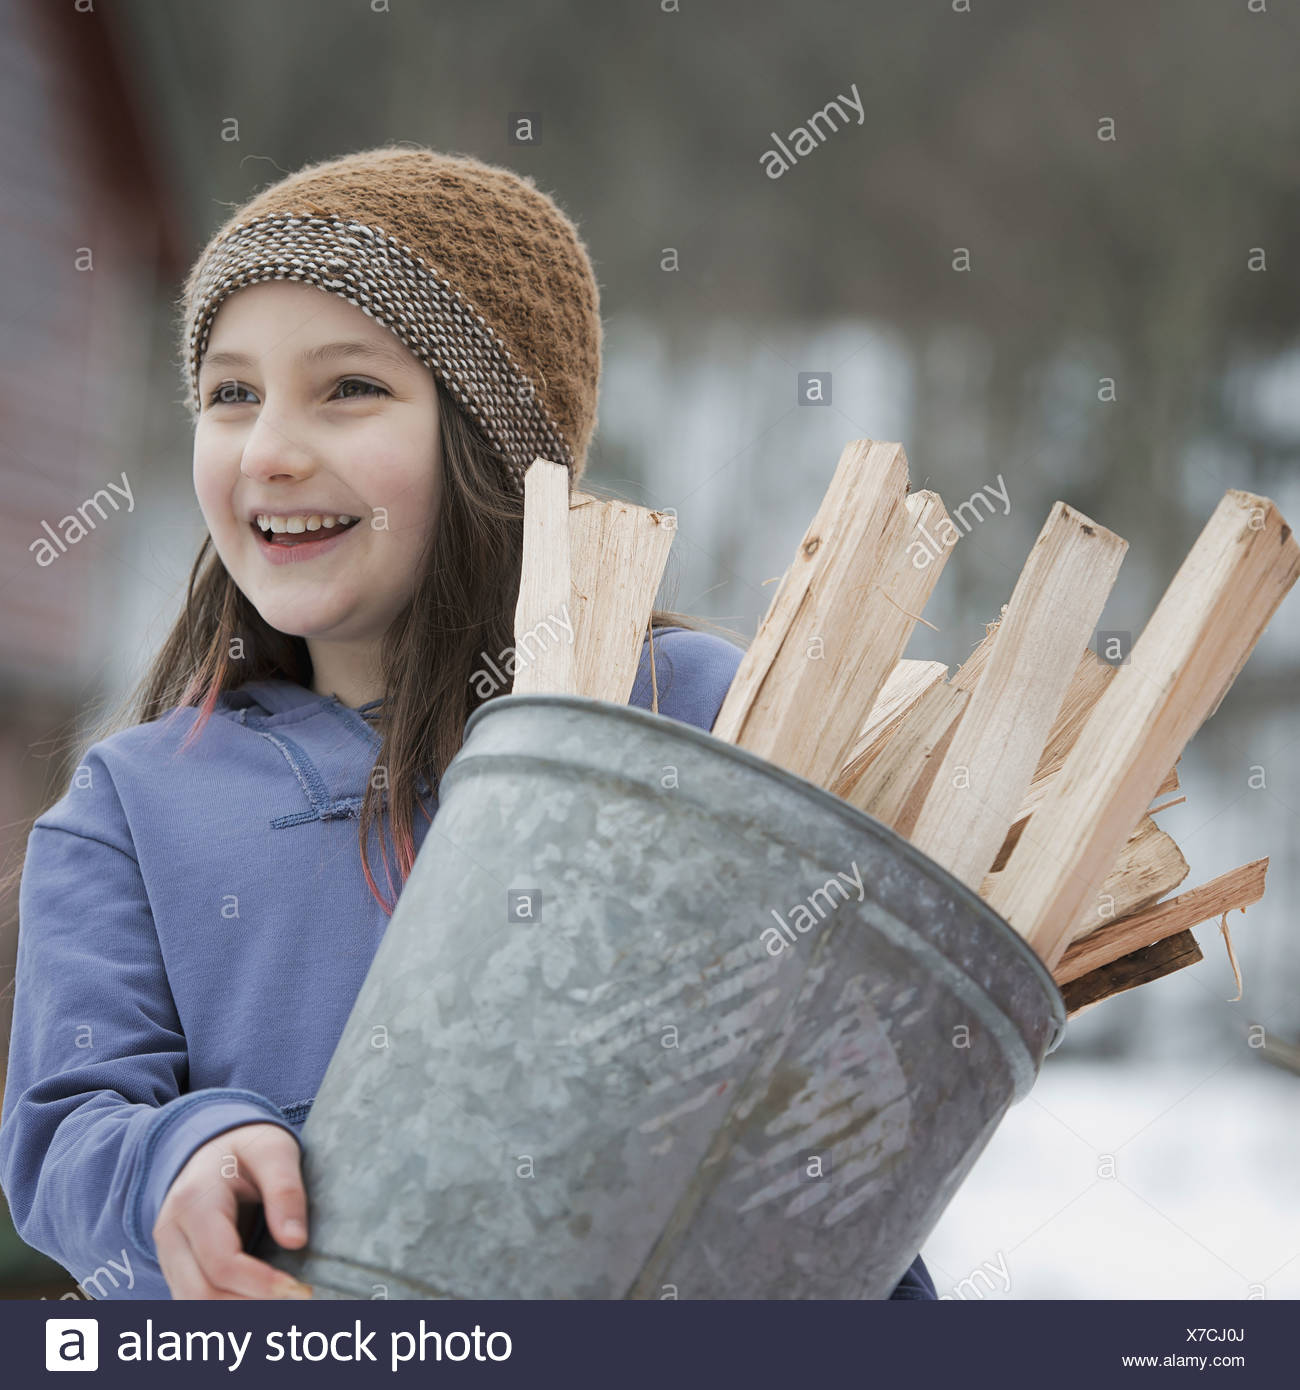 An organic farm in winter in New York State USA A girl carrying a bucket full of kindling and firewood - Stock Image